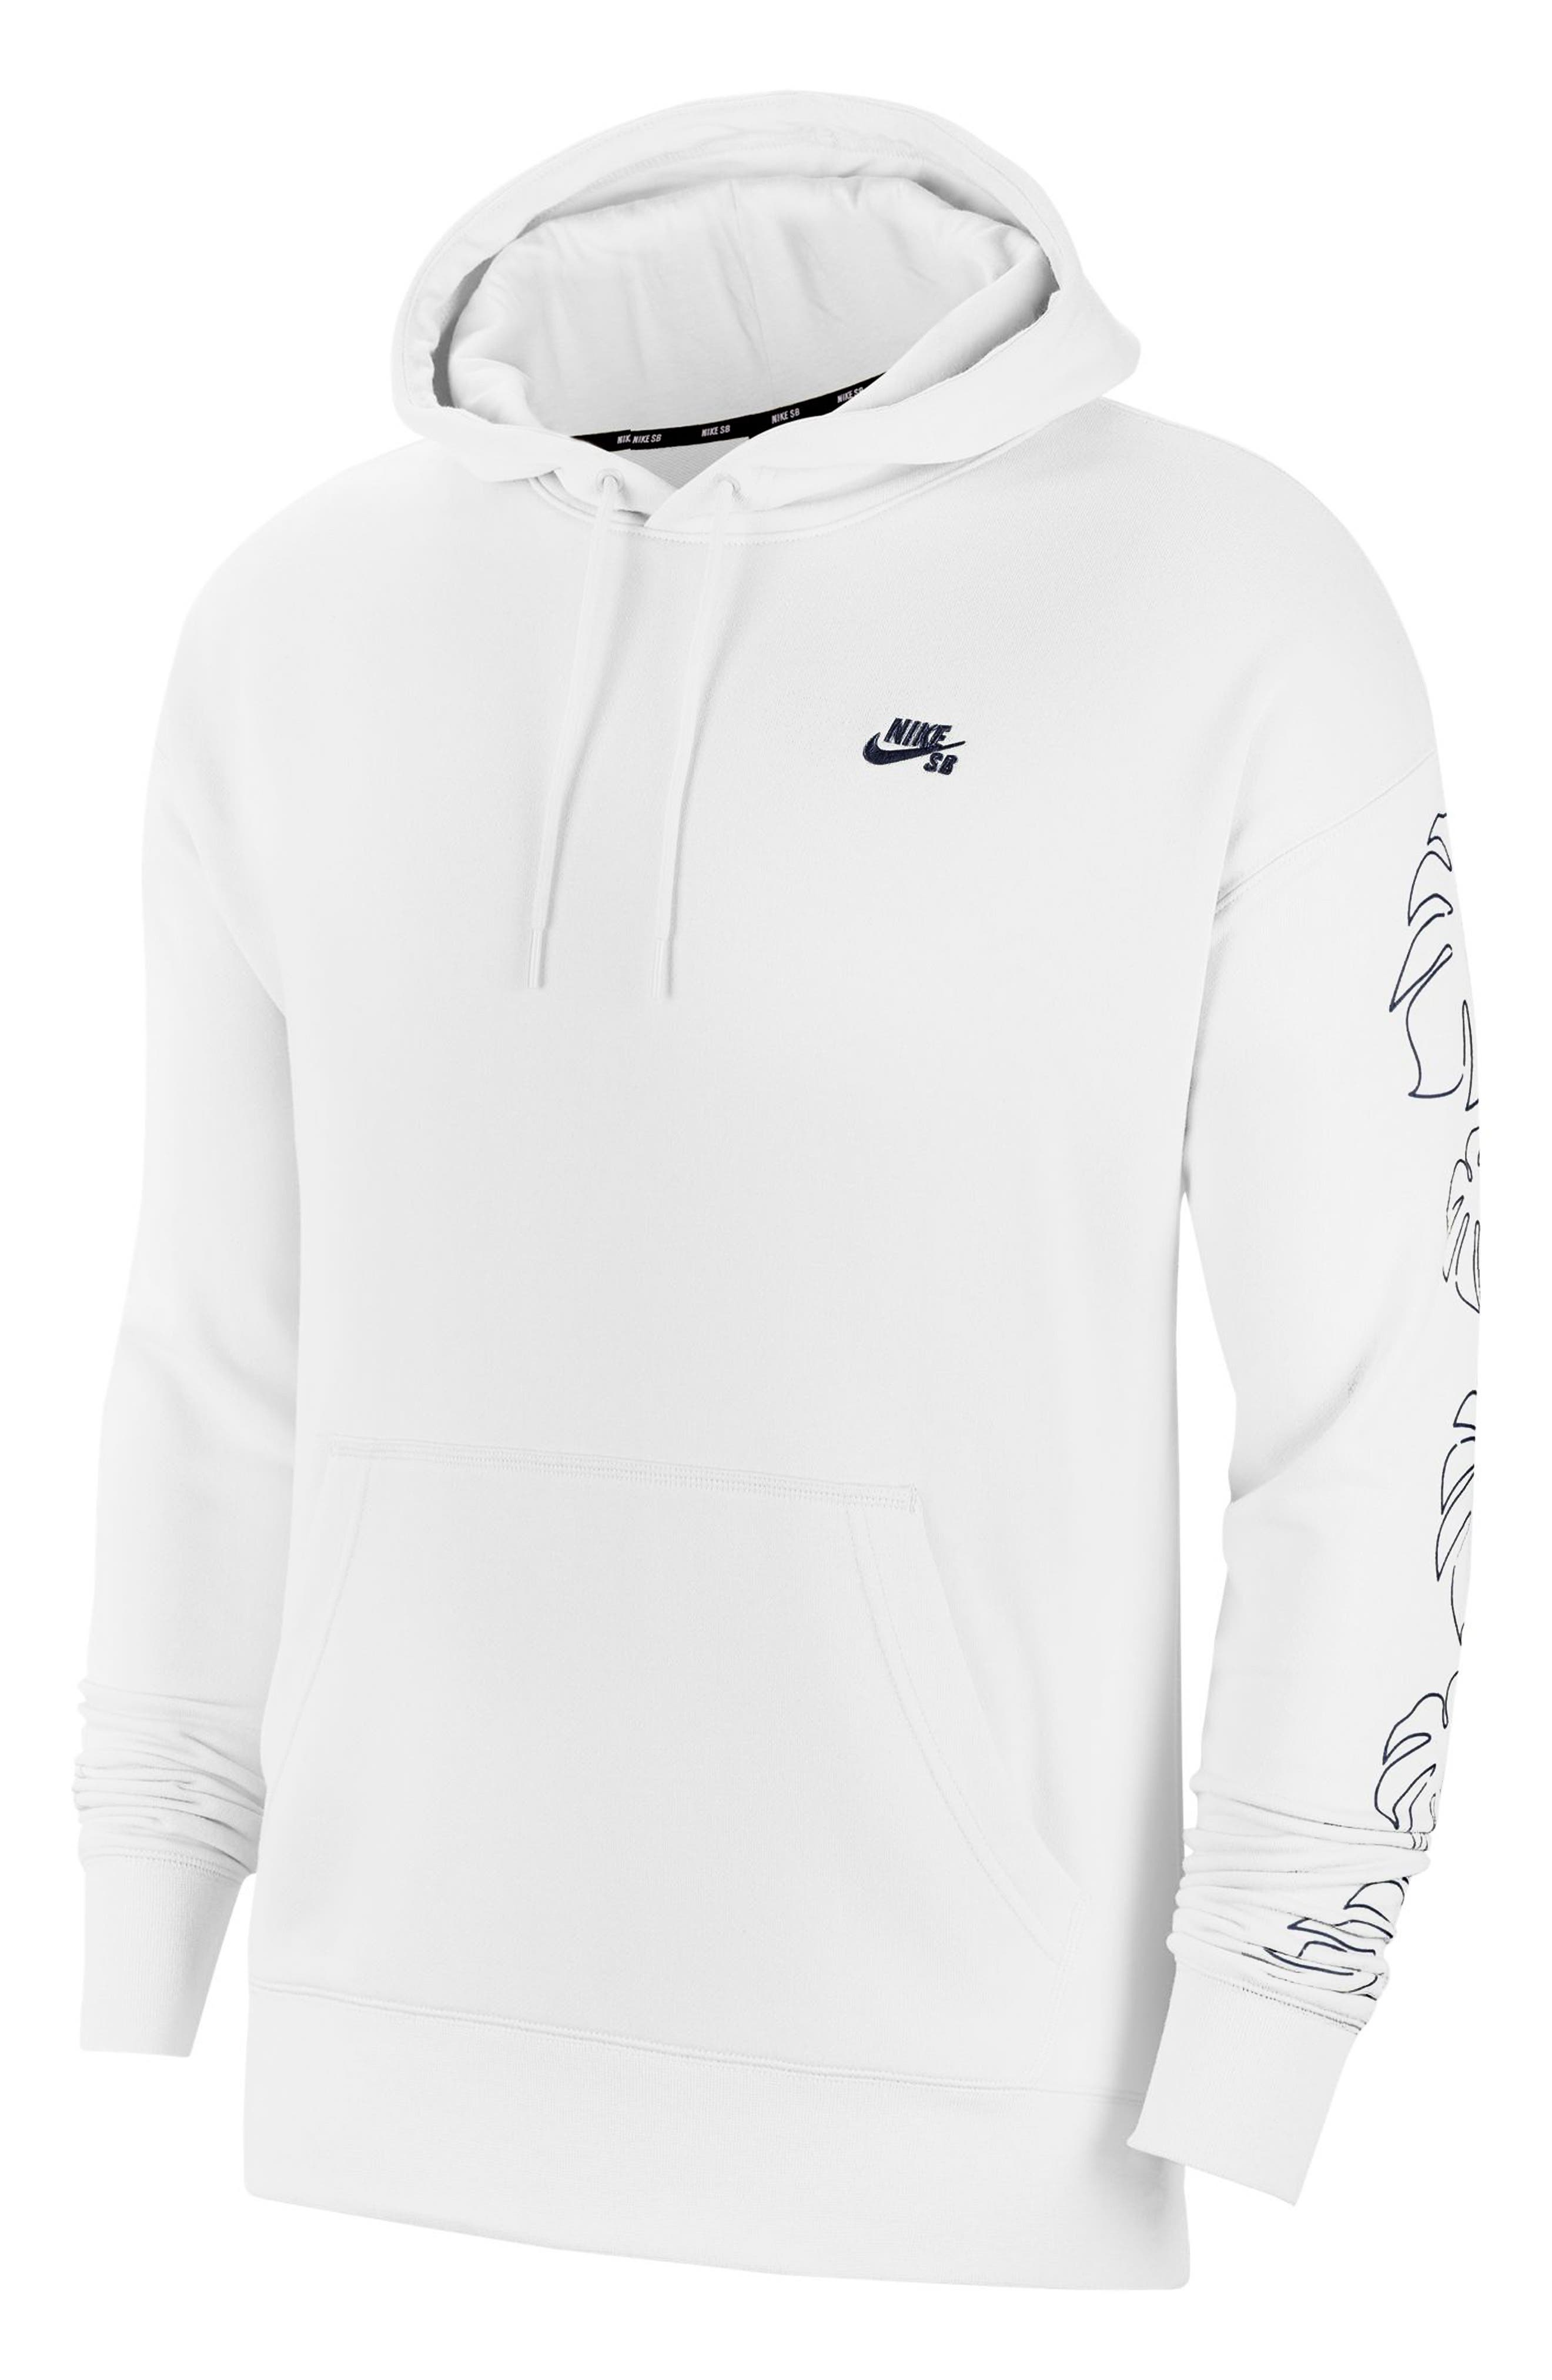 Give your sporty style a taste of the tropics with this French terry hoodie that combines a laid-back look with all-day comfort. Style Name: Nike Sb Paradise Gfx Hoodie. Style Number: 5957324. Available in stores.